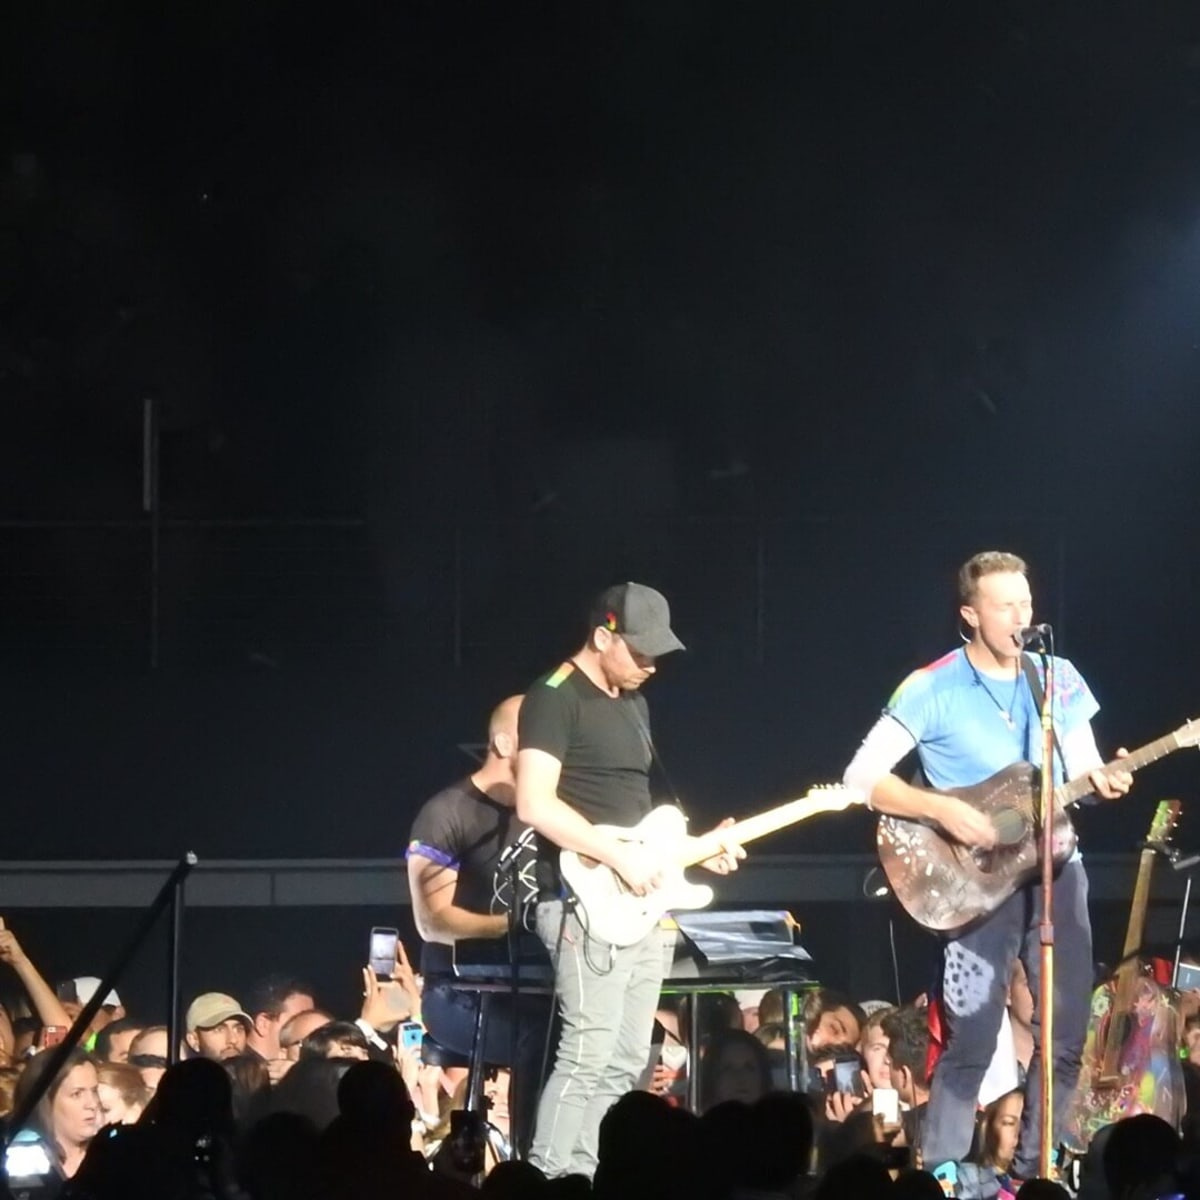 Coldplay performed several acoustic numbers on a small stage